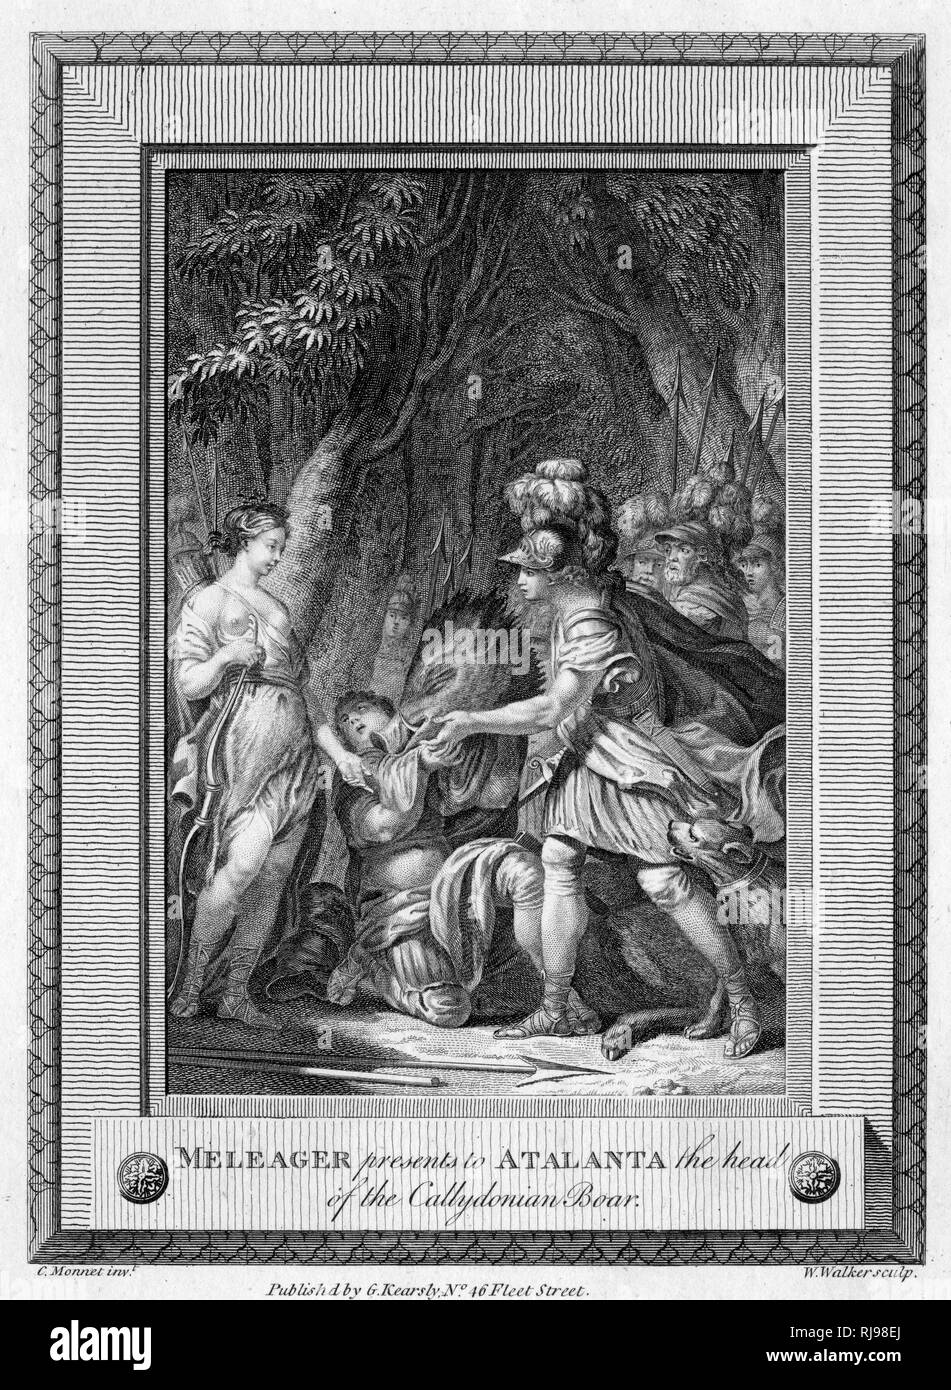 Meleager presents Atalanta, princess of Calydon, with the head of the great boar because, though he was the one who killed it, she first wounded and weakened it - Stock Image